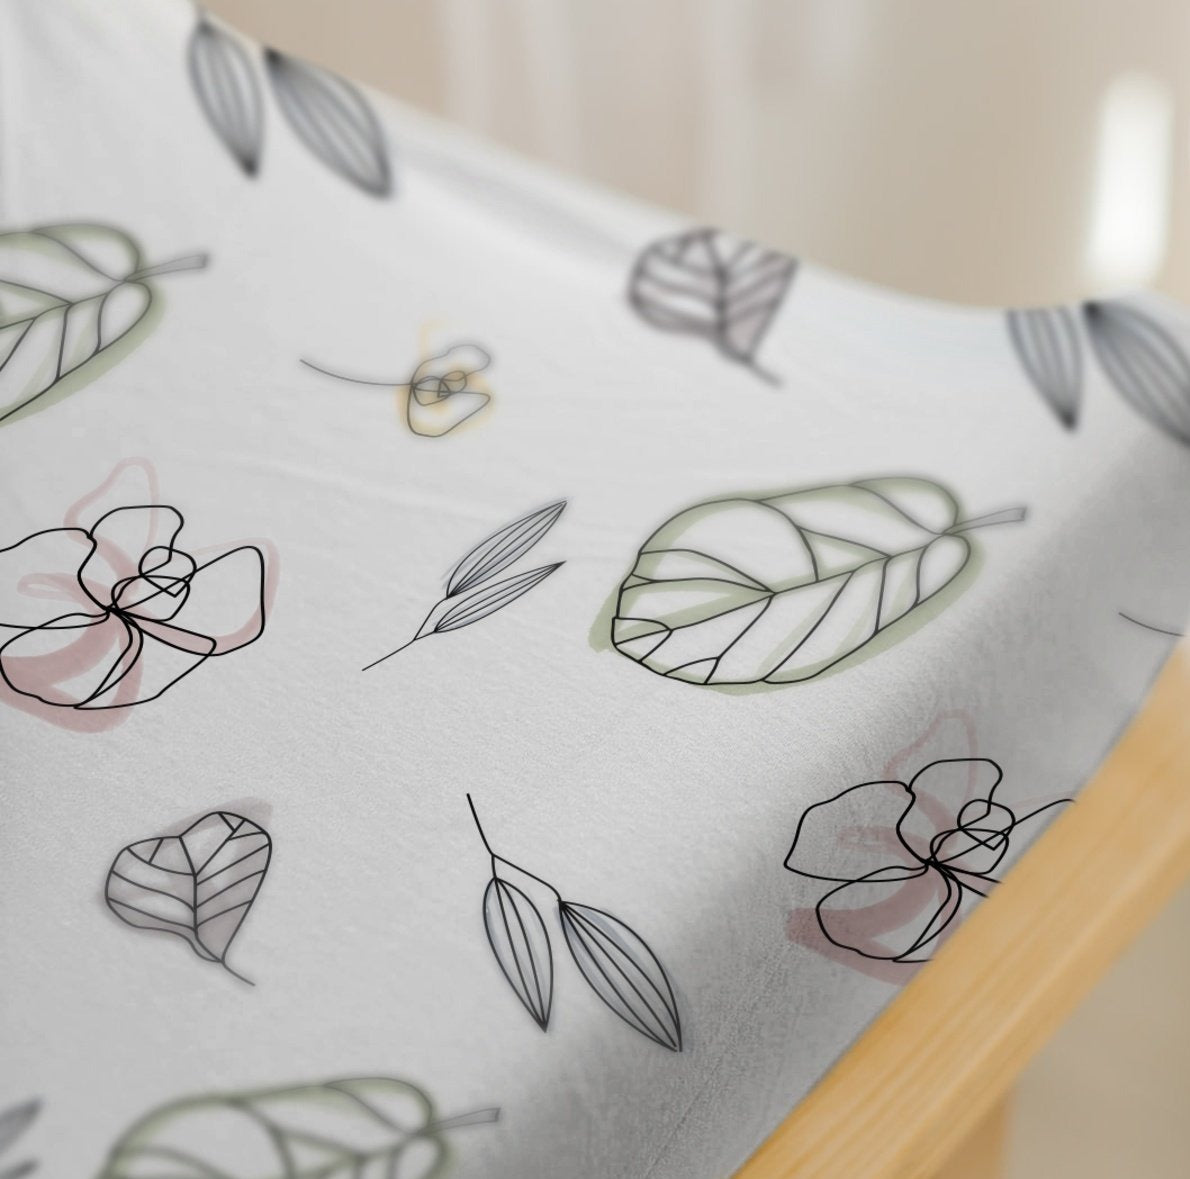 3 PIECE BEDDING SET | ABSTRACT FLORAL